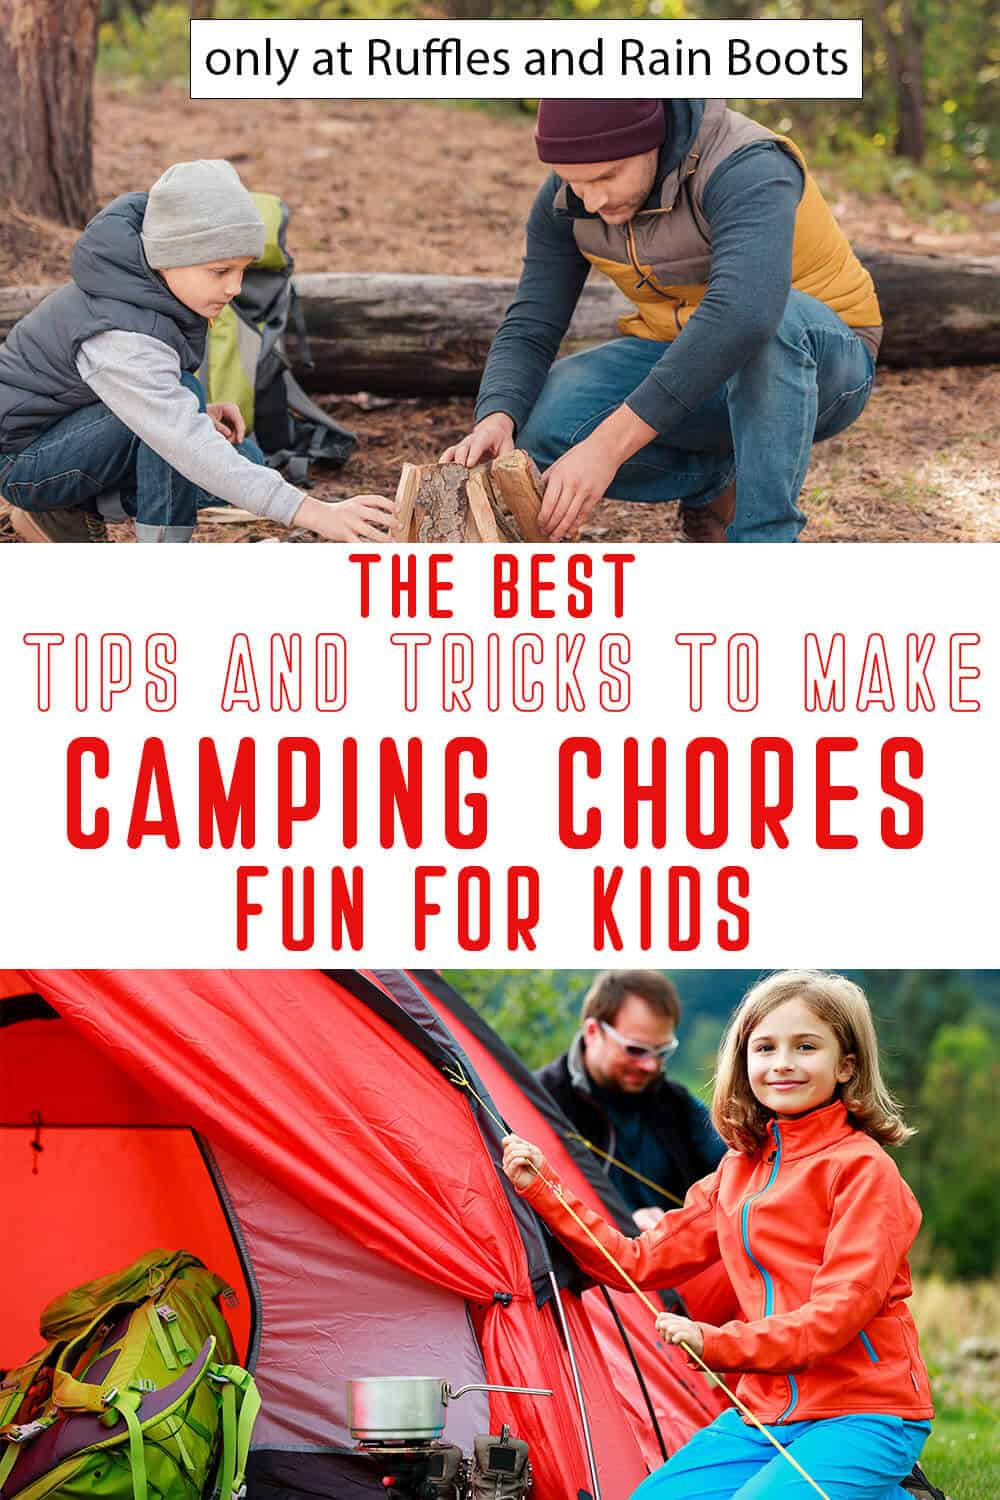 photo collage of fun camping chores for kids with text which reads the best tips and tricks to make camping chores fun for kids